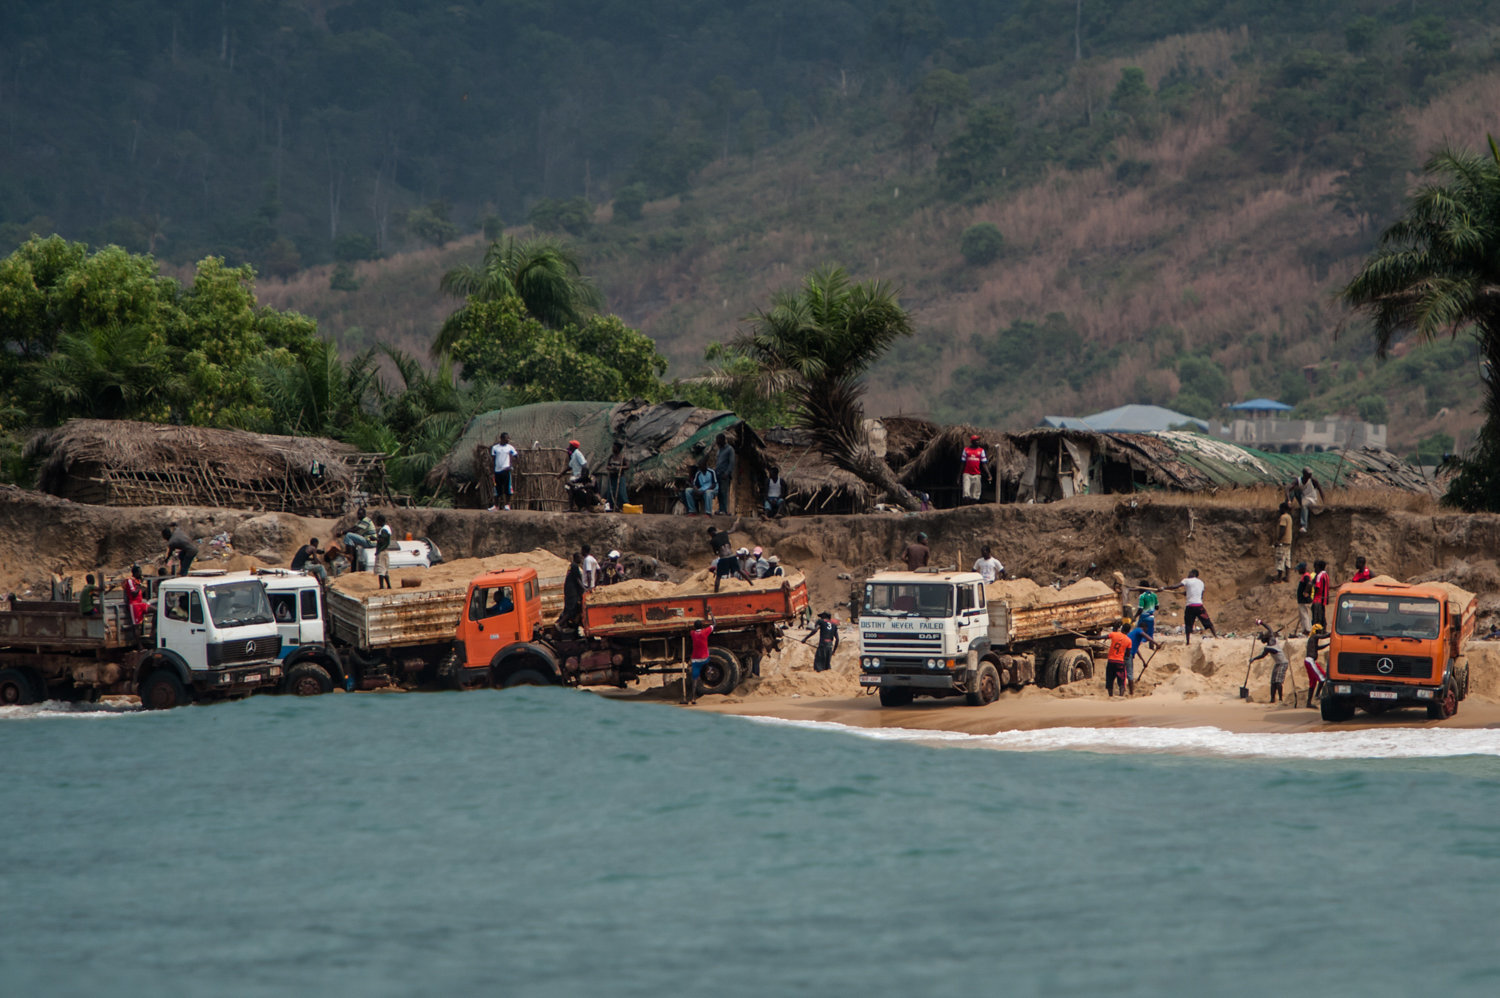 Sand mining has been declared illegal by President Koroma, but it still takes place in broad daylight.